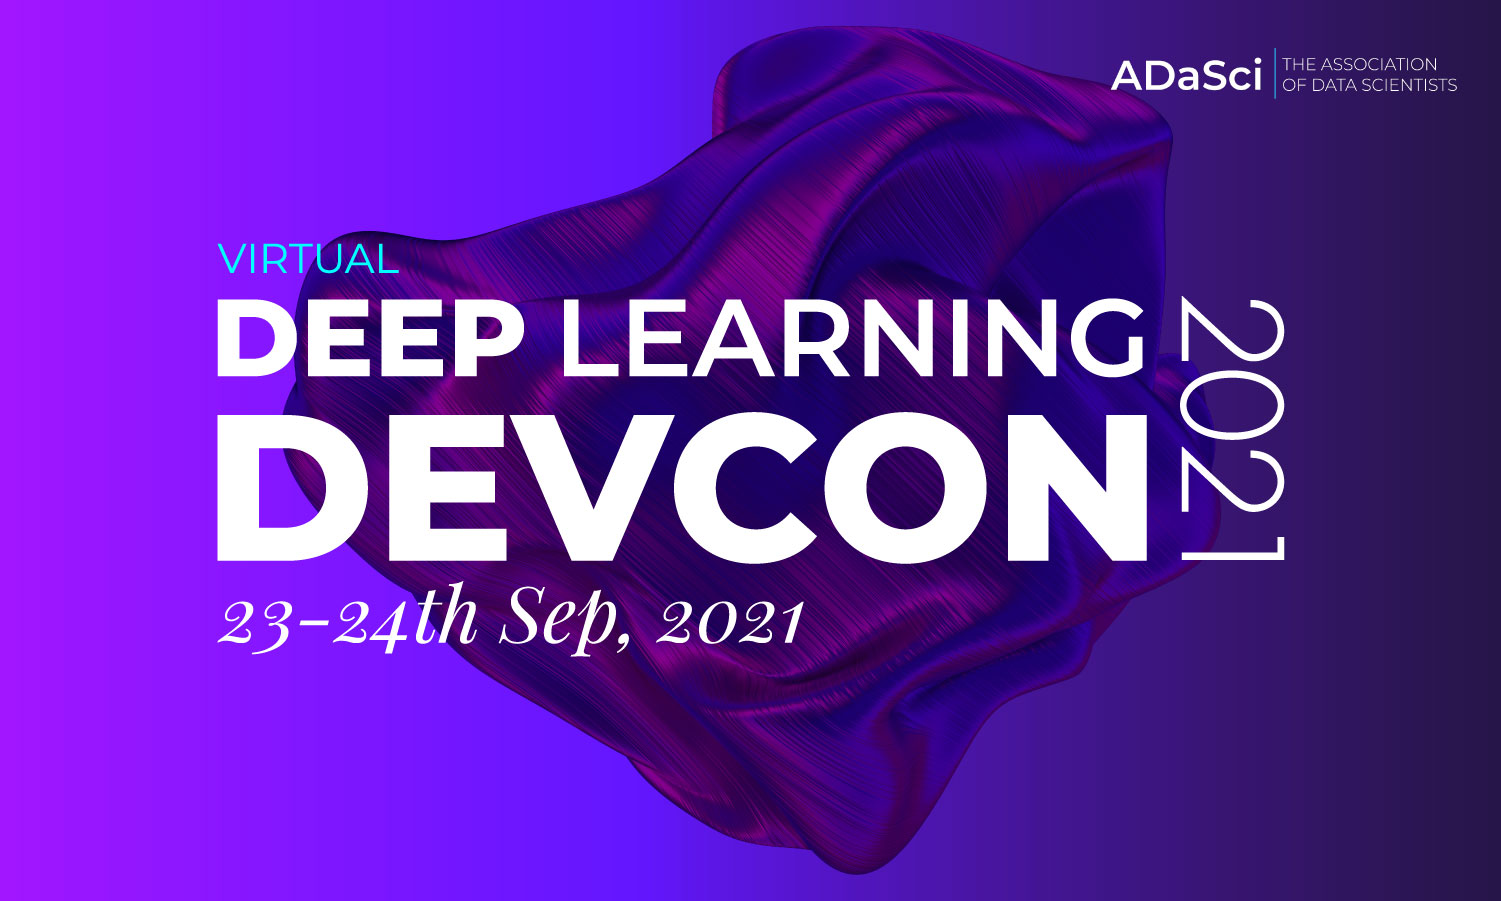 Deep Learning DevCon 2021: The Second Edition Of Virtual Summit Announced